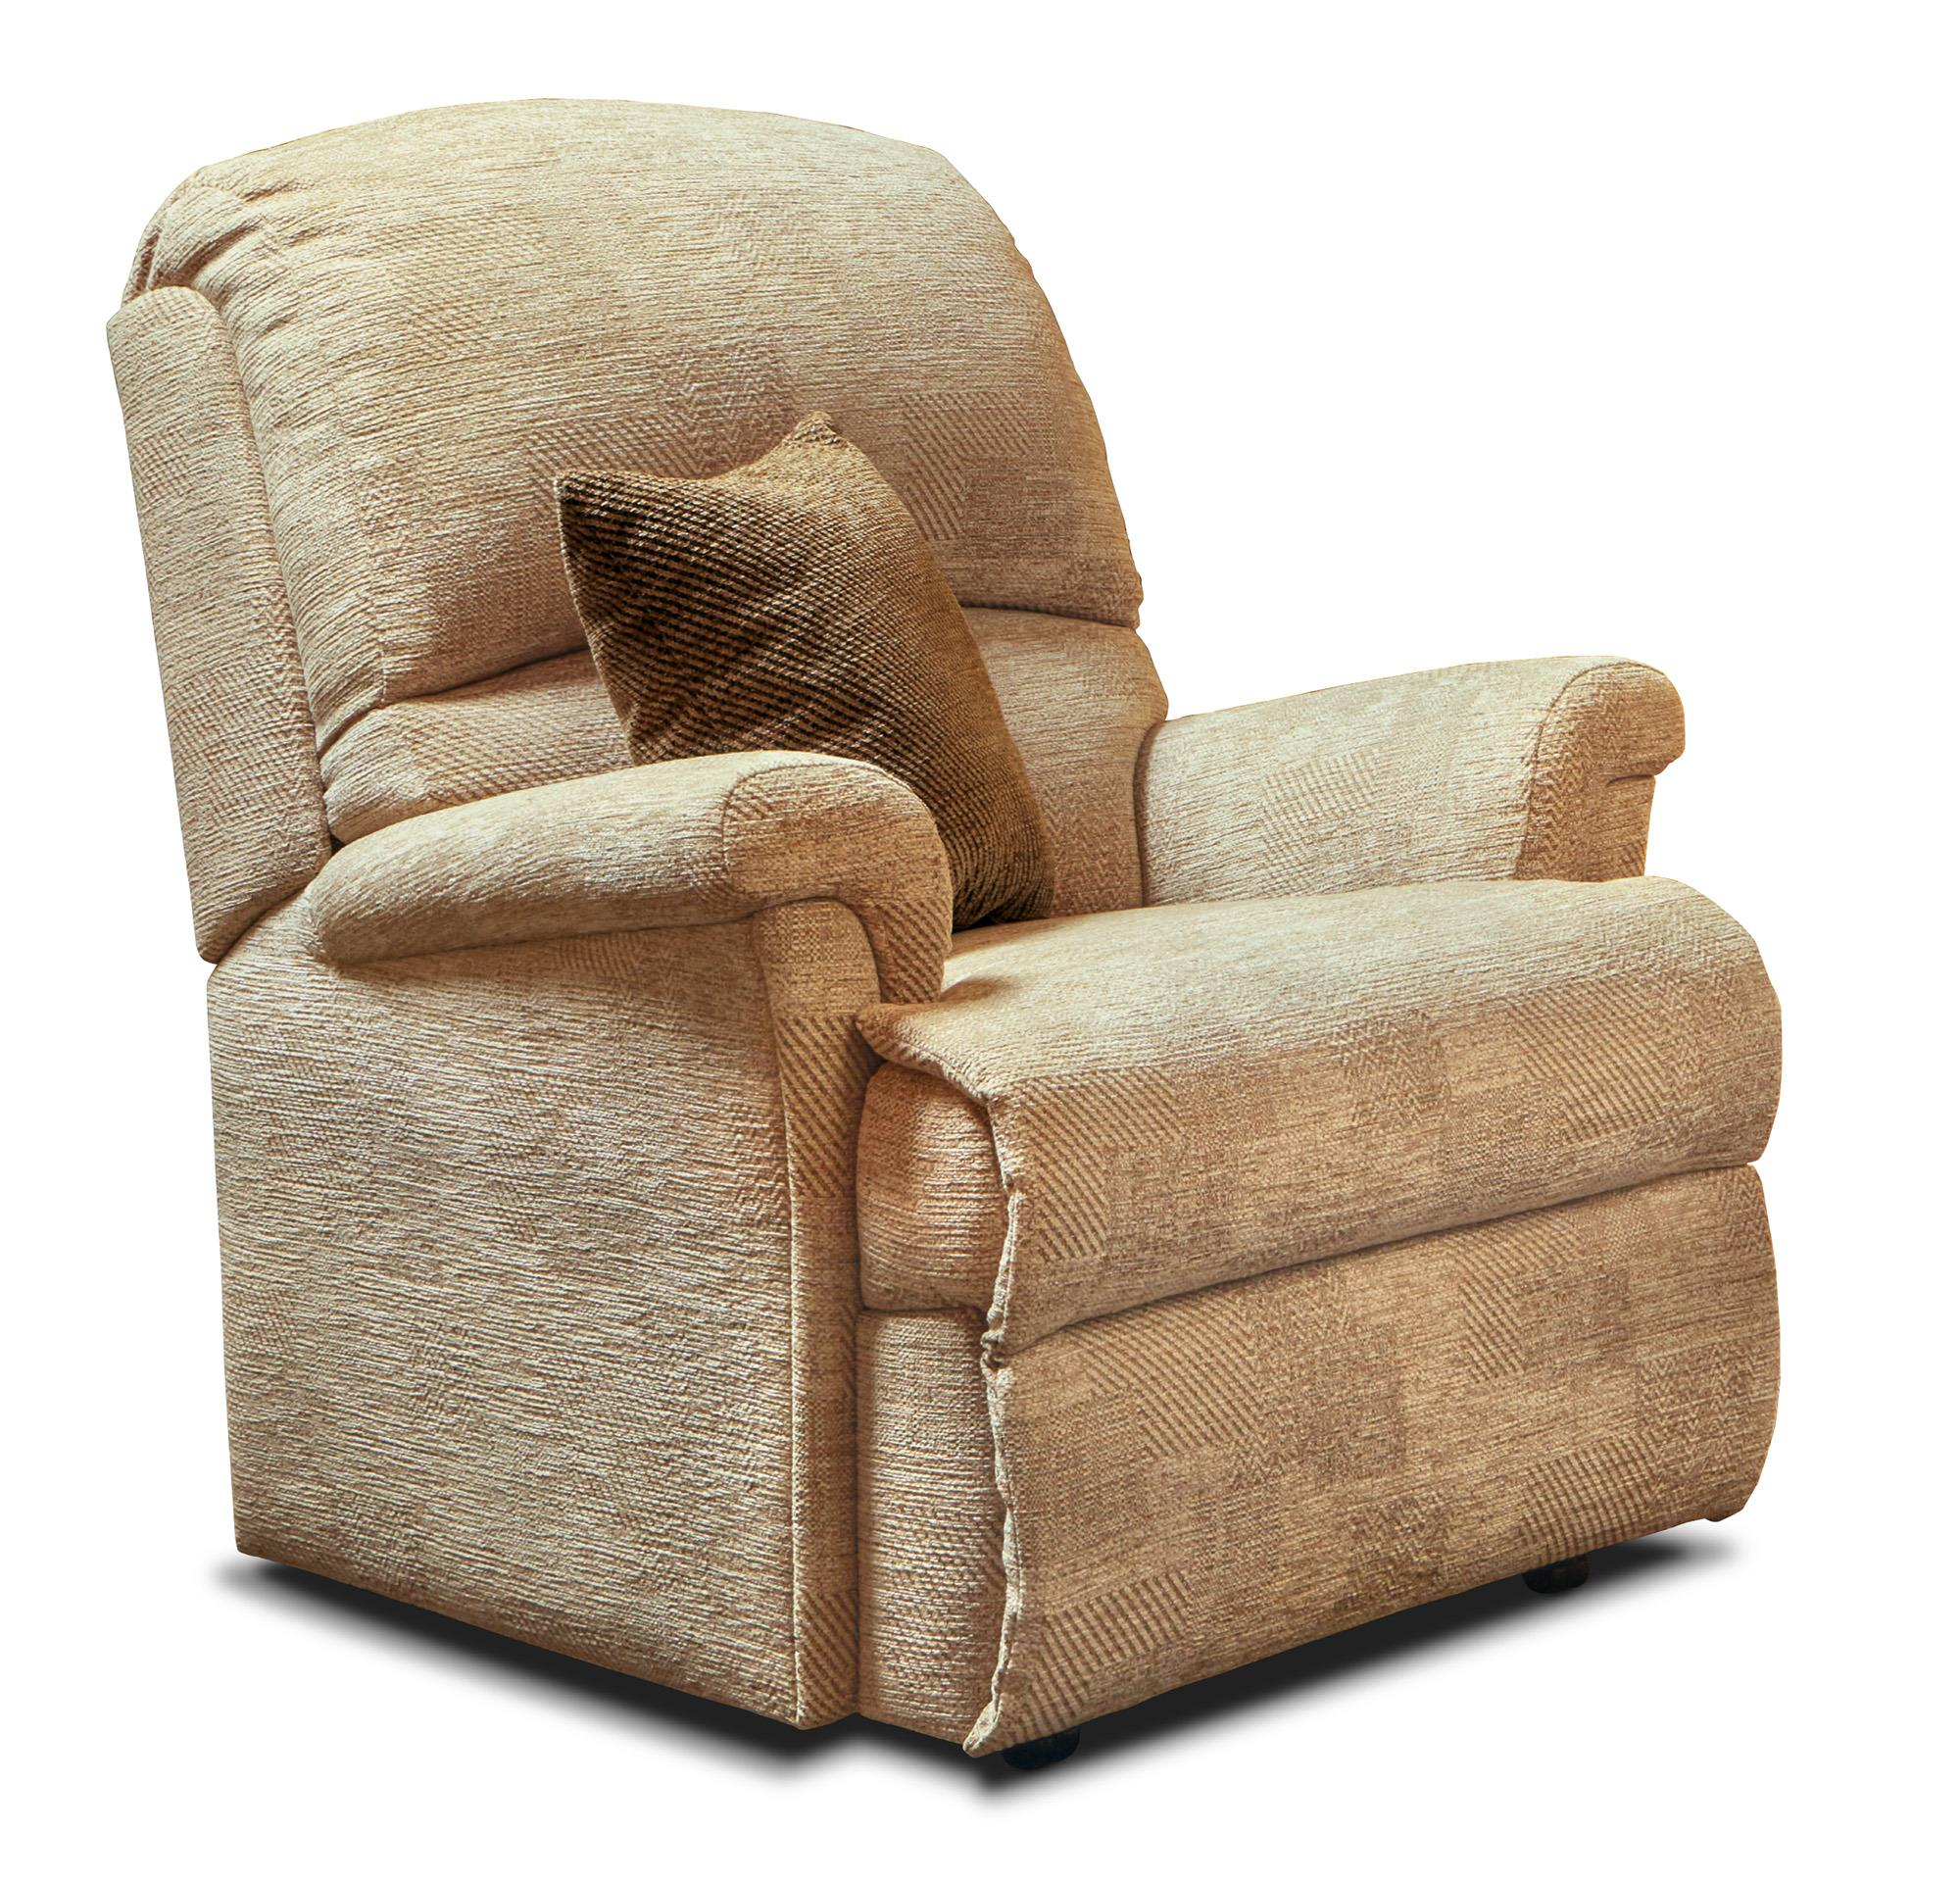 Nevada Chair - by Sherborne